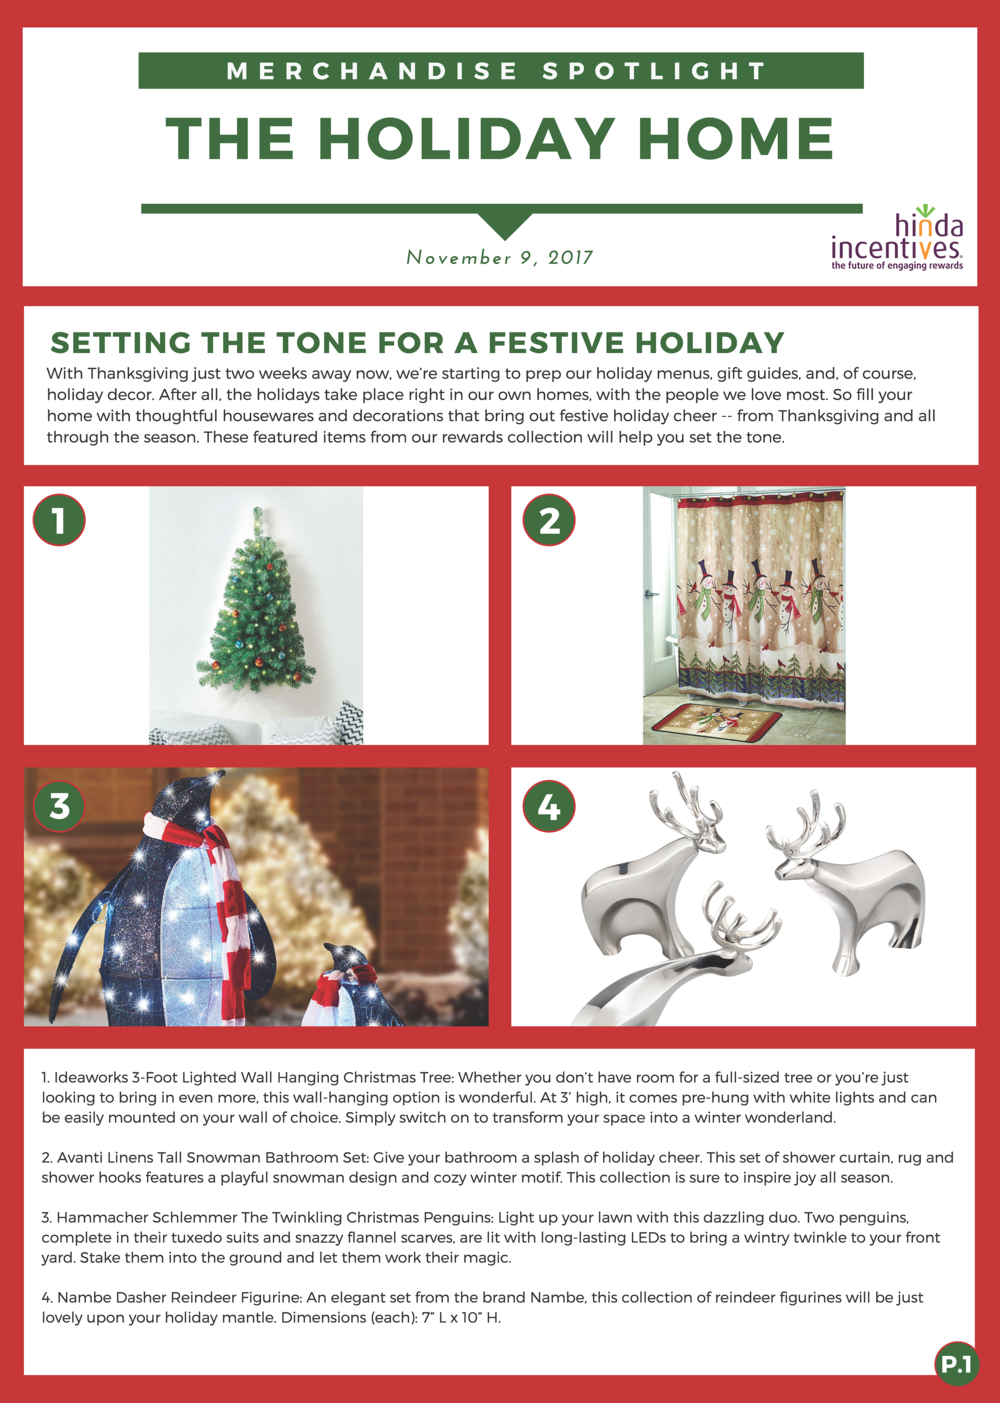 Merchandise Spotlight The Holiday Home 11.9.17_Page_1-3000W.png